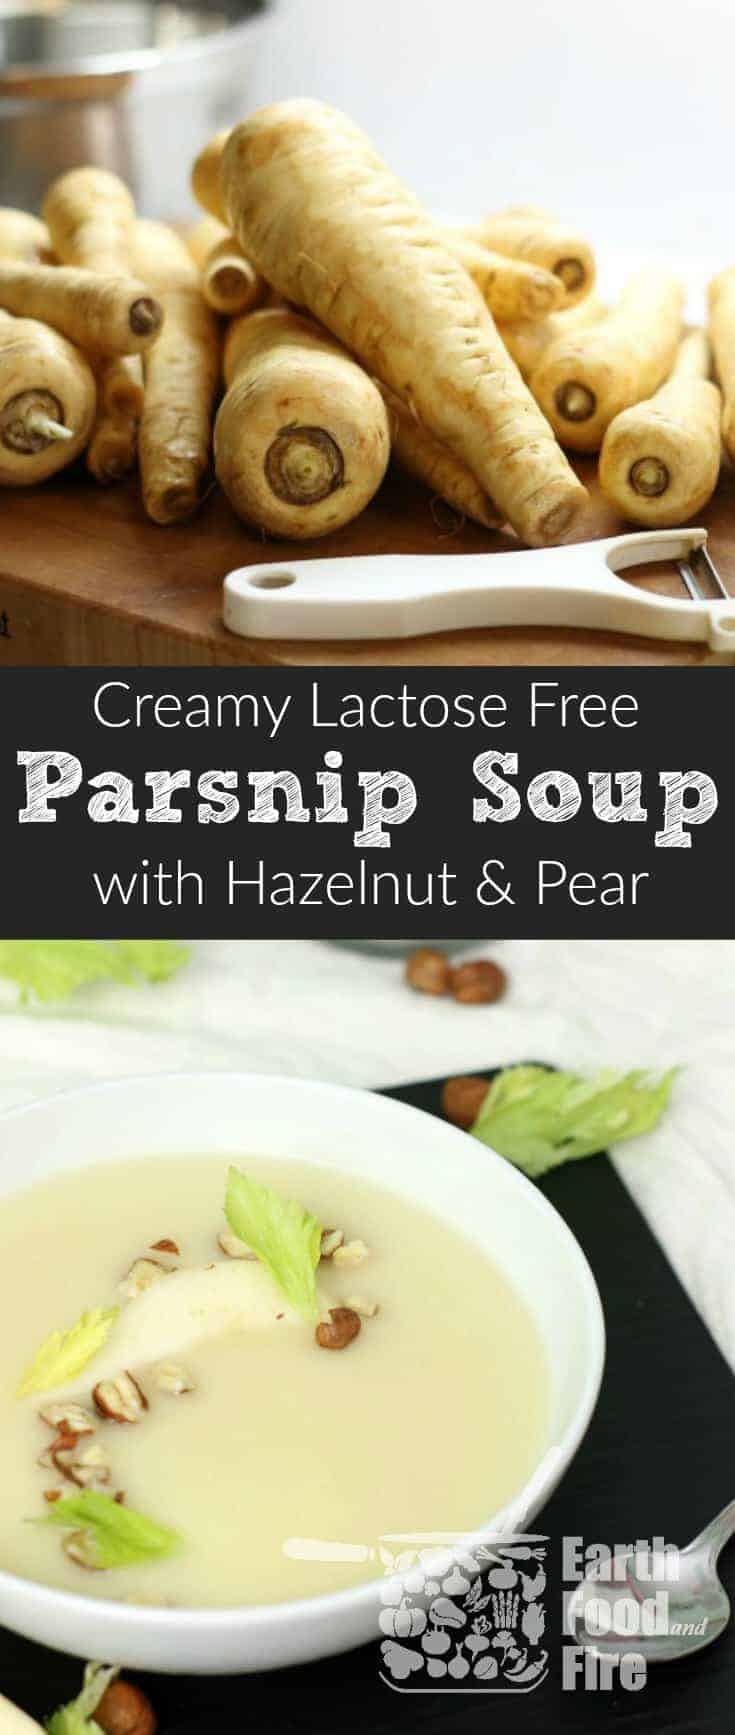 Silky smooth with a hint of pear and hazelnuts, this lactose free creamy parsnip soup is ideal for a Fall inspired appetizer or meal. #lactosefree #paleo #glutenfree #parsnip #soup